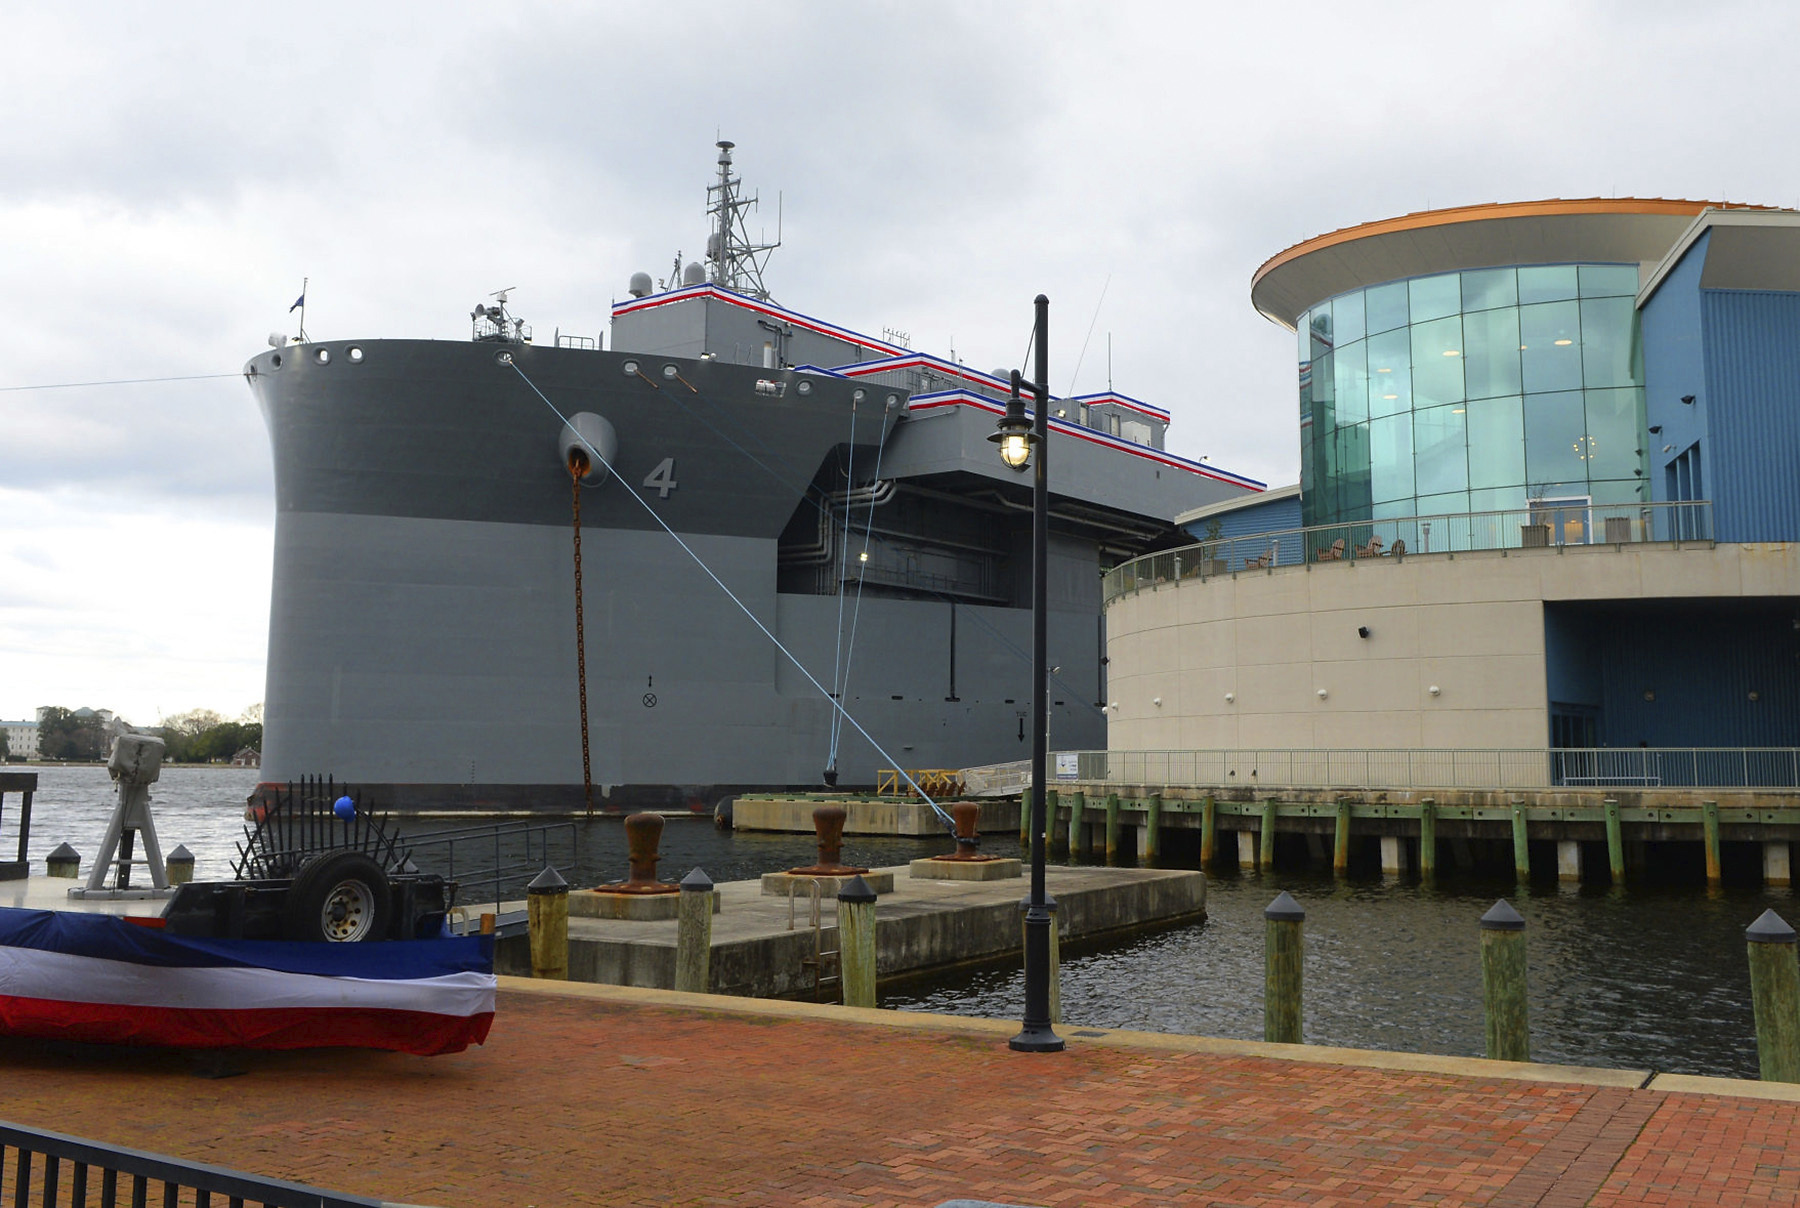 The U.S.S. Hershel Woody Williams in port at Norfolk, Va. for the commissioning ceremony Saturday, March 7, 2020.